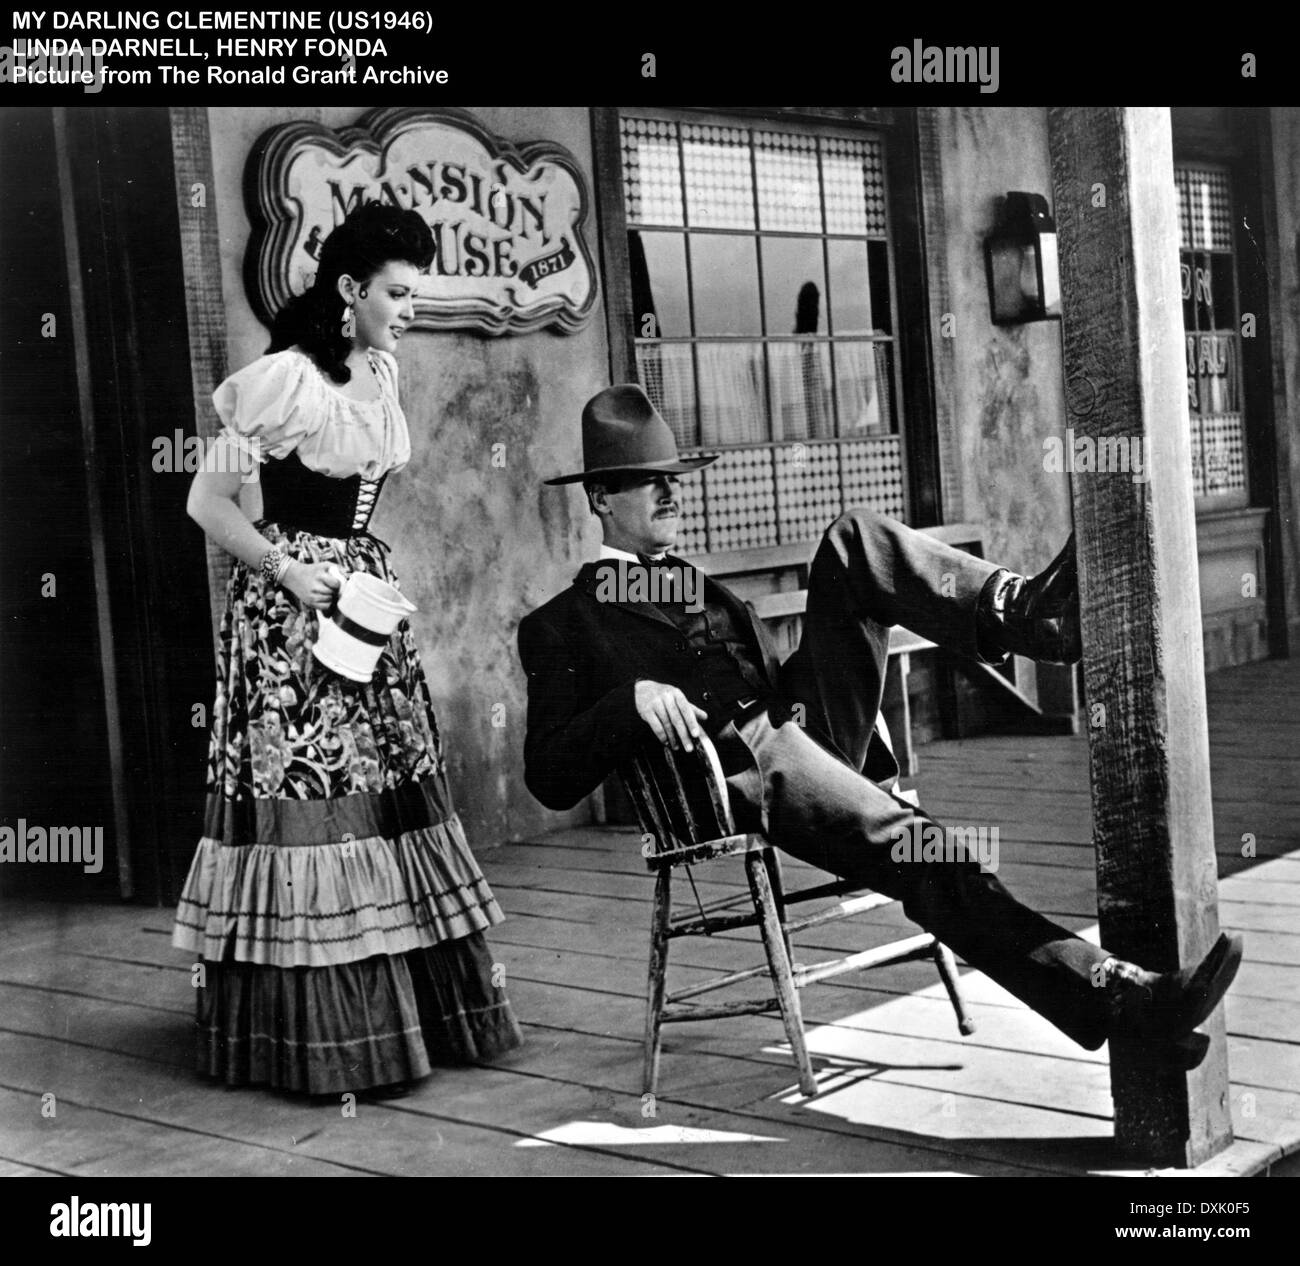 MY DARLING CLEMENTINE - Stock Image